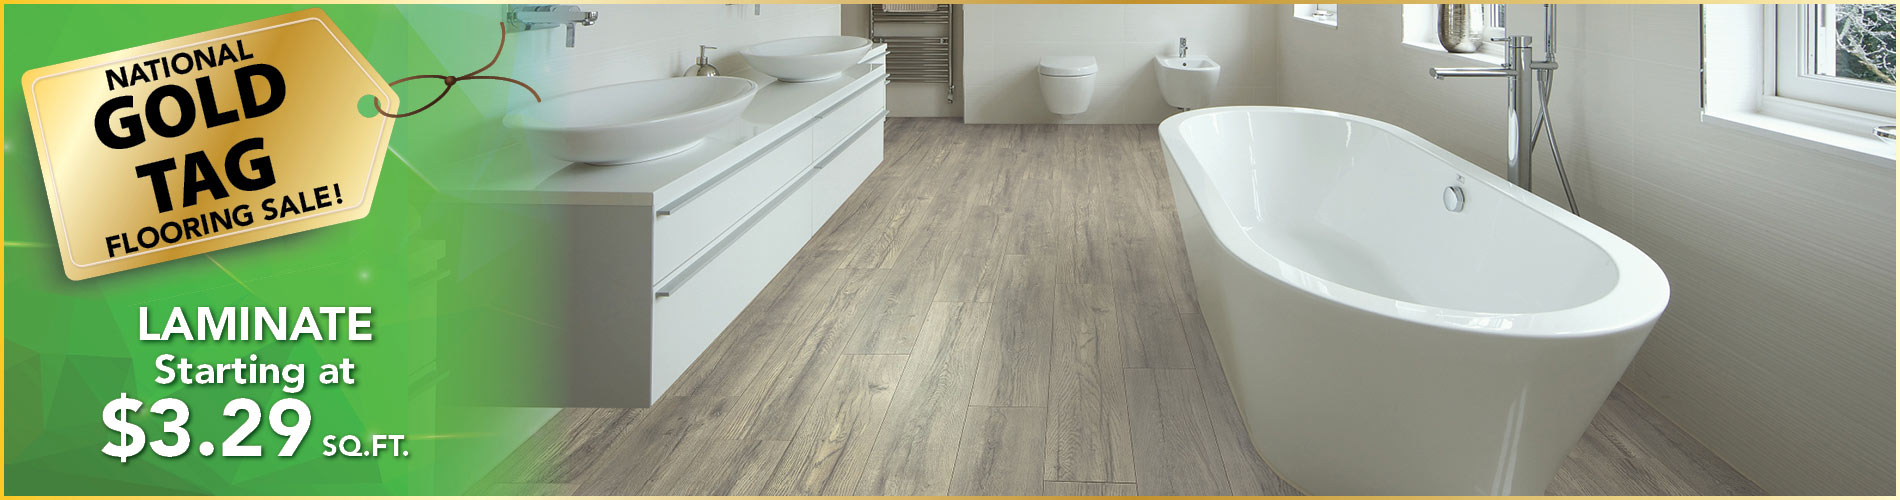 Laminate flooring on sale starting at $3.29 sq. ft. at Gillespie's Abbey Carpet & Floor